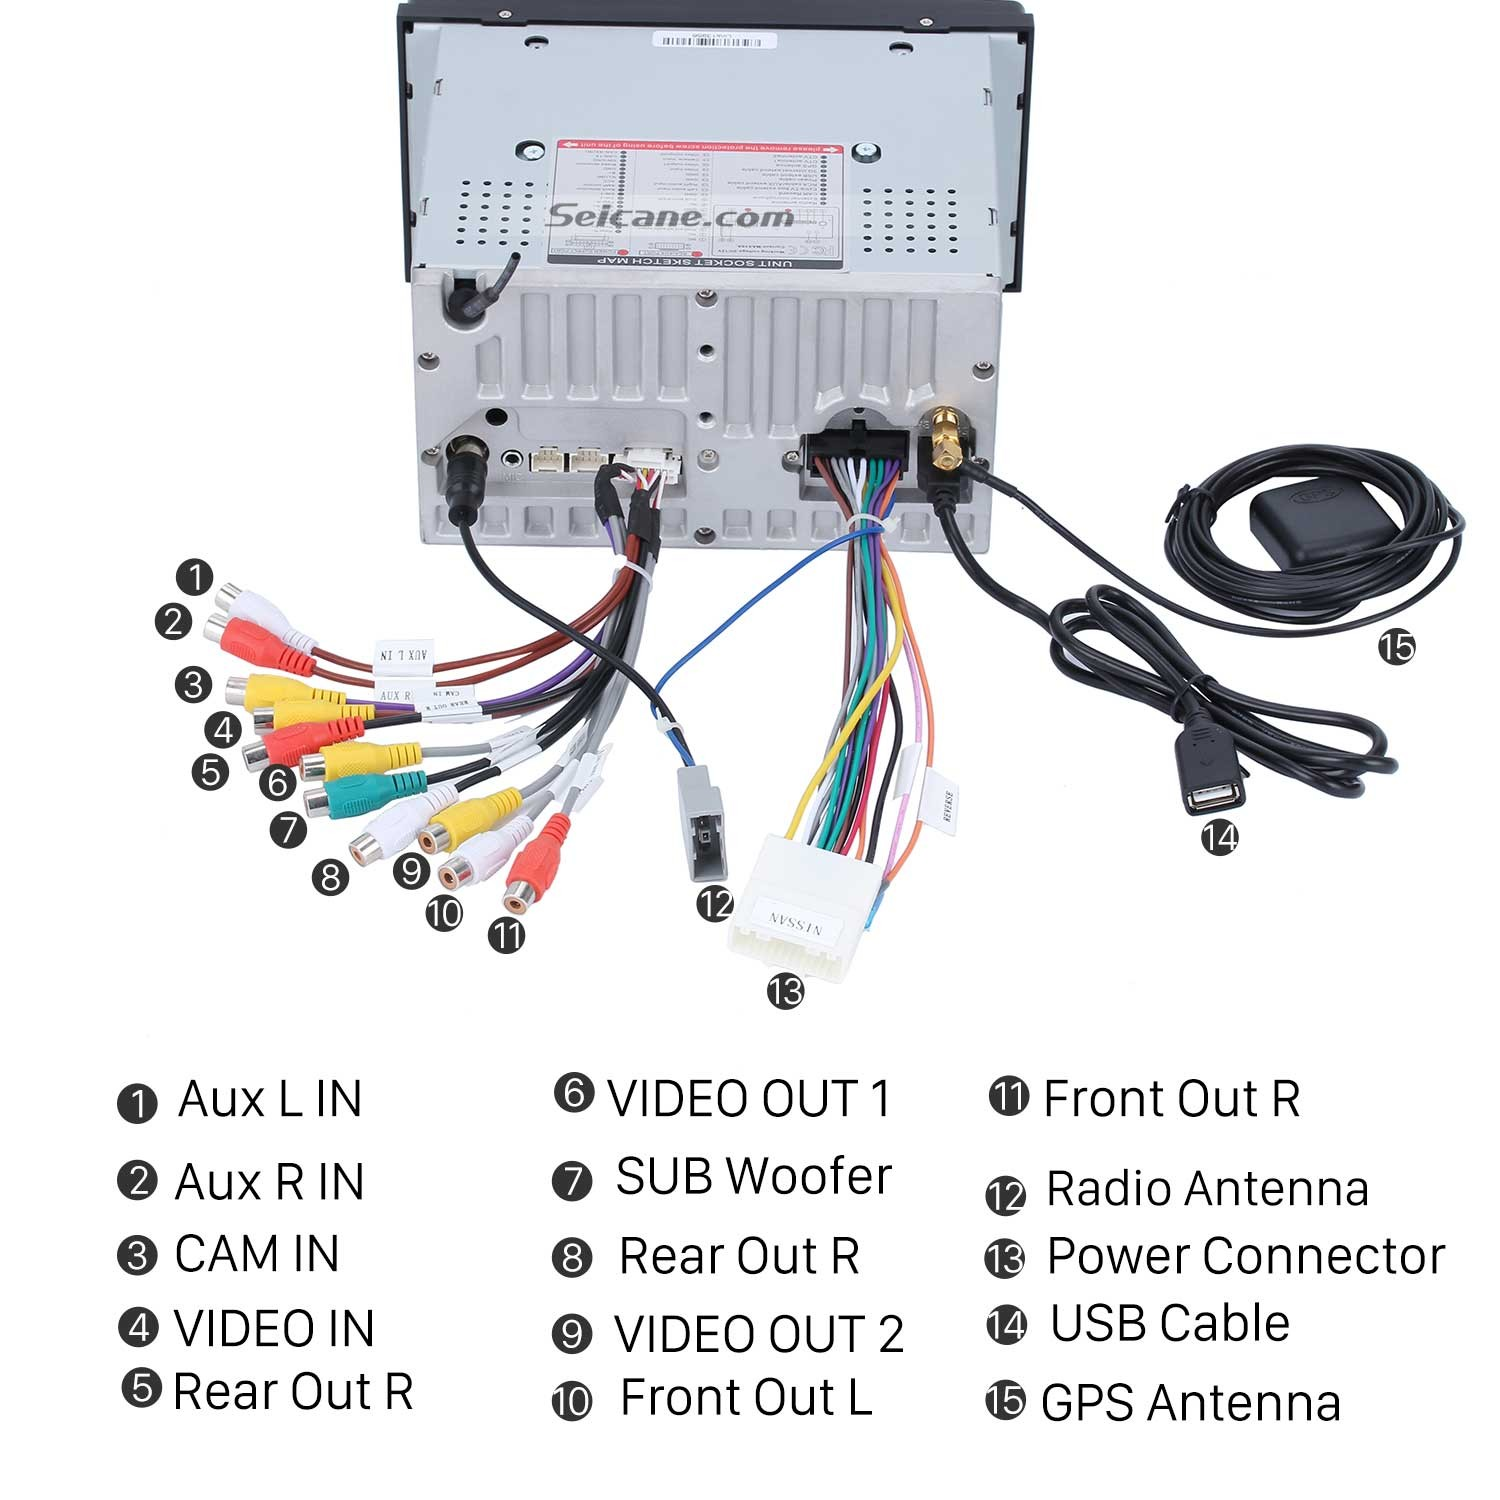 hight resolution of 2008 subaru forester stereo wiring diagram generous 02 impreza radio wiring diagram contemporary electrical